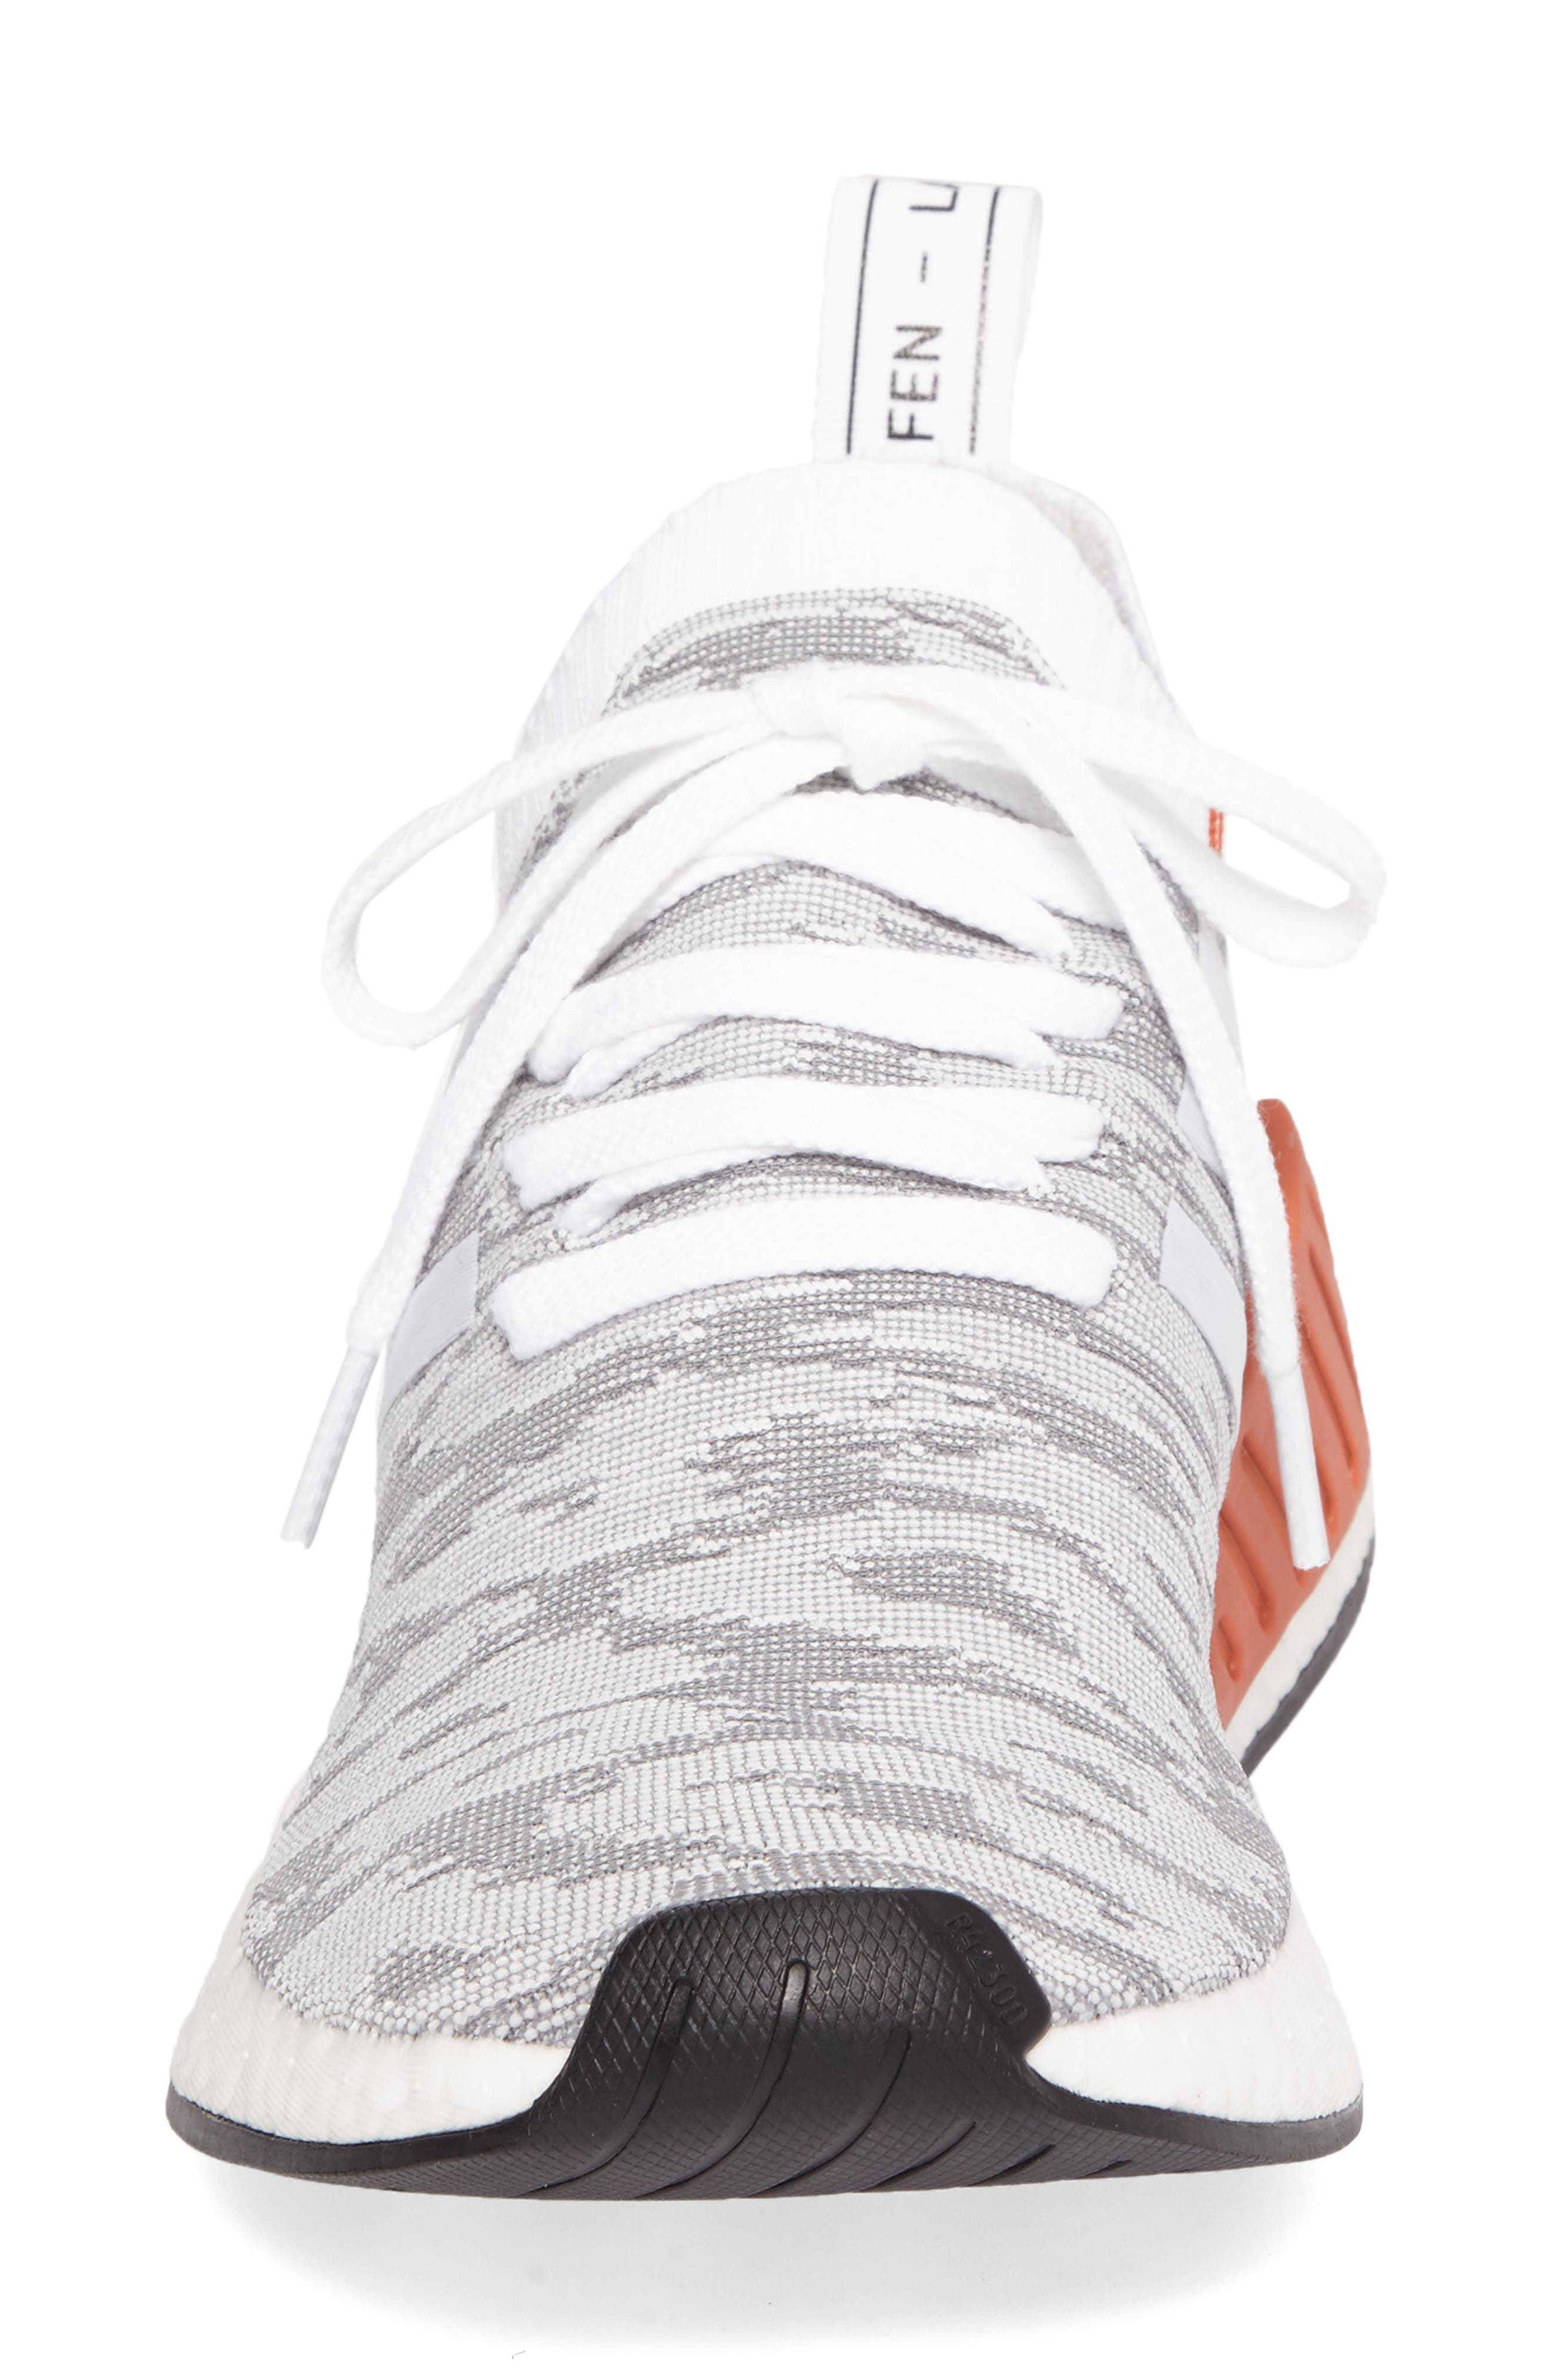 NMD R2 Primeknit Running Shoe,                             Alternate thumbnail 4, color,                             White/ White/ Core Black